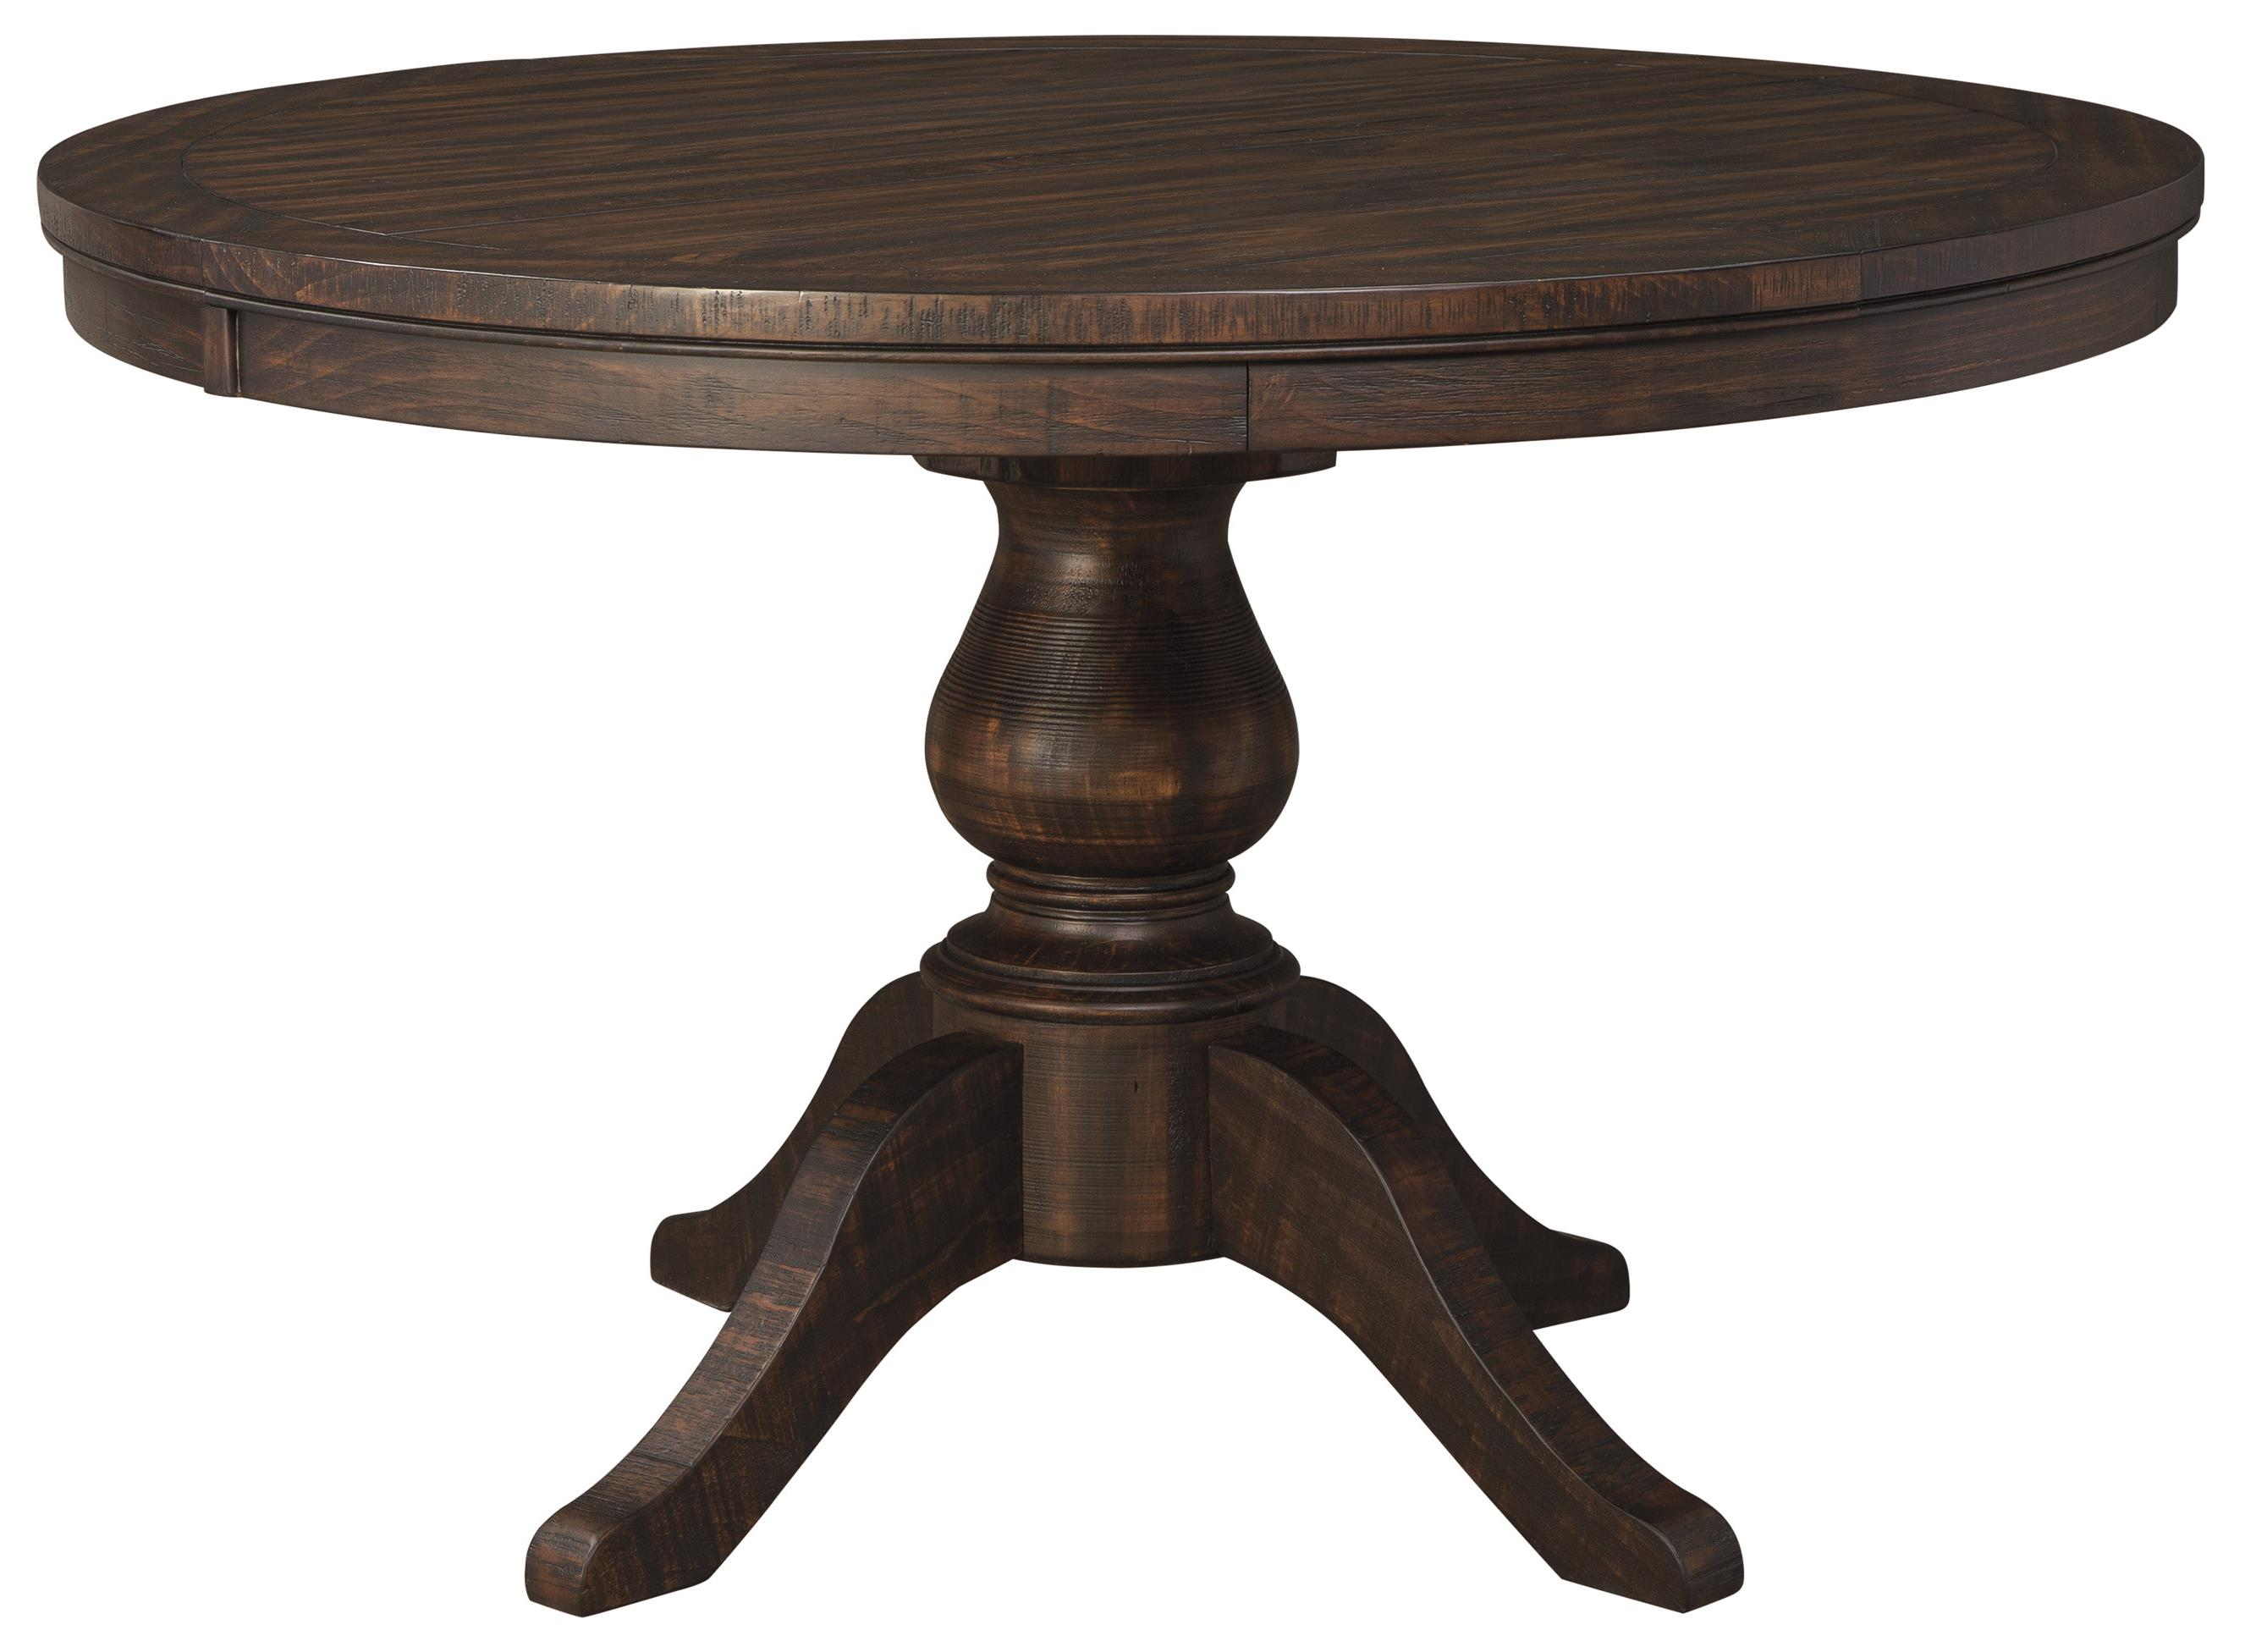 Solid wood pine round dining room pedestal extension table for Dining room round table